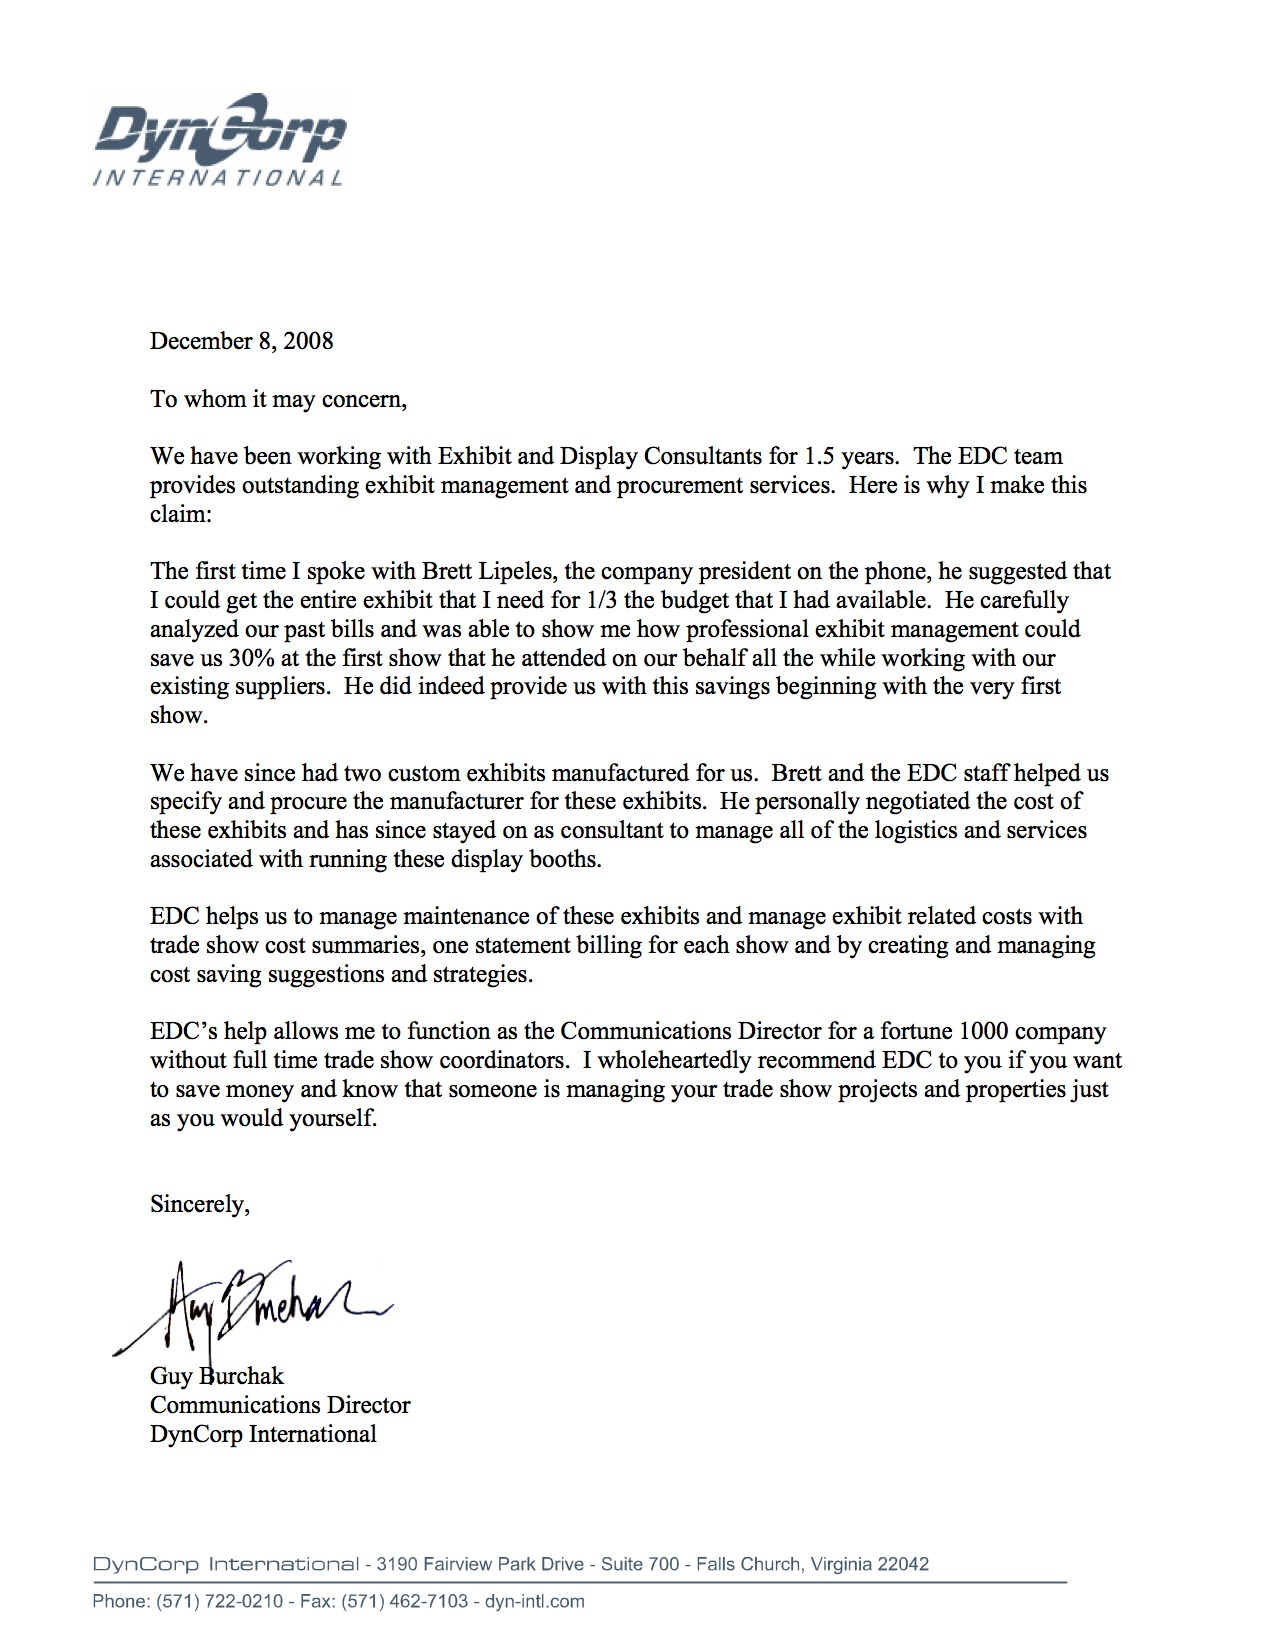 DynCorp Int'l Reference Letter